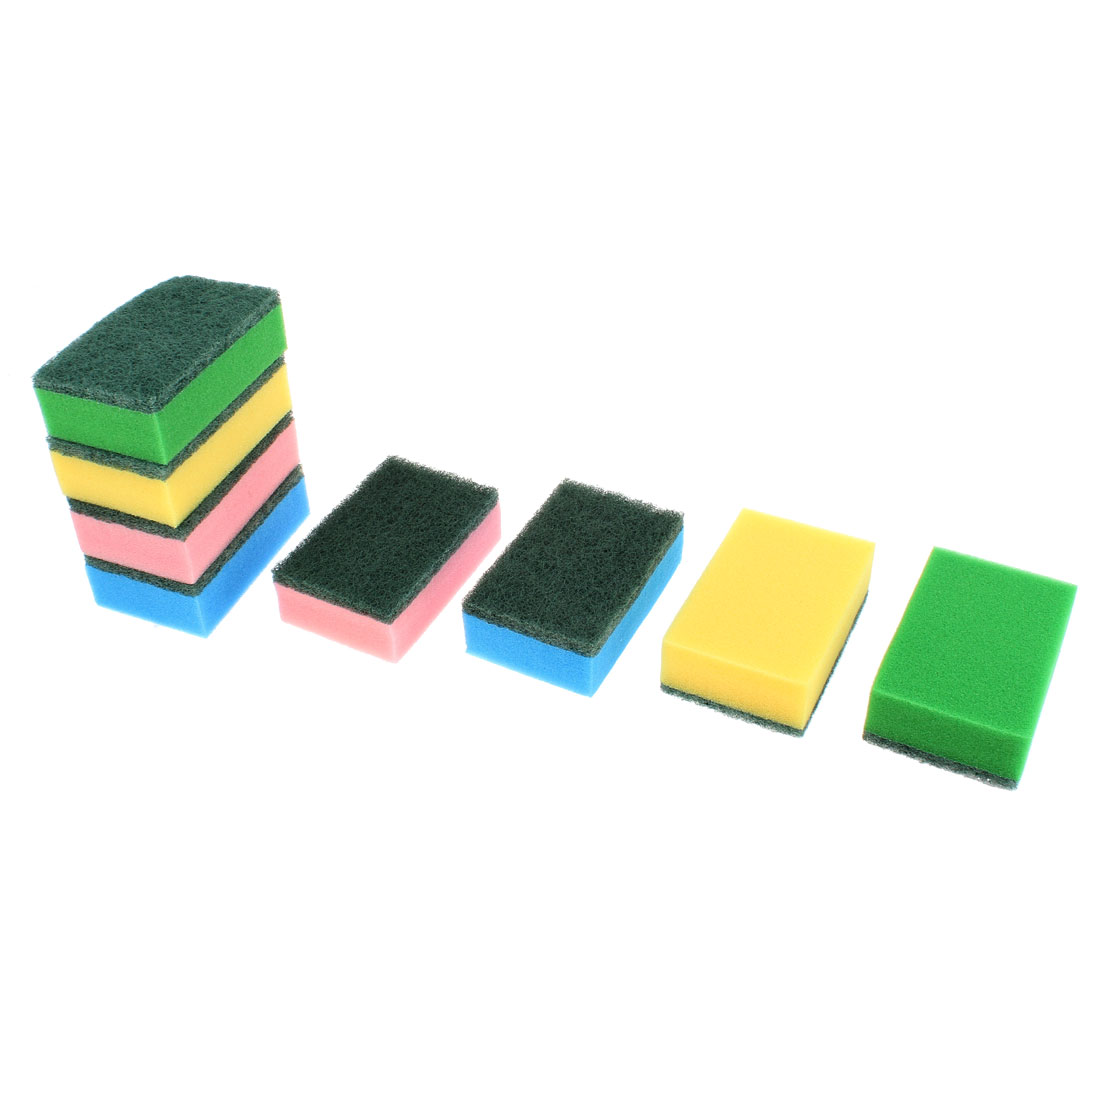 Rectangle Shaped Bowl Dish Wash Sponge Cleaning Pad 8 Pcs